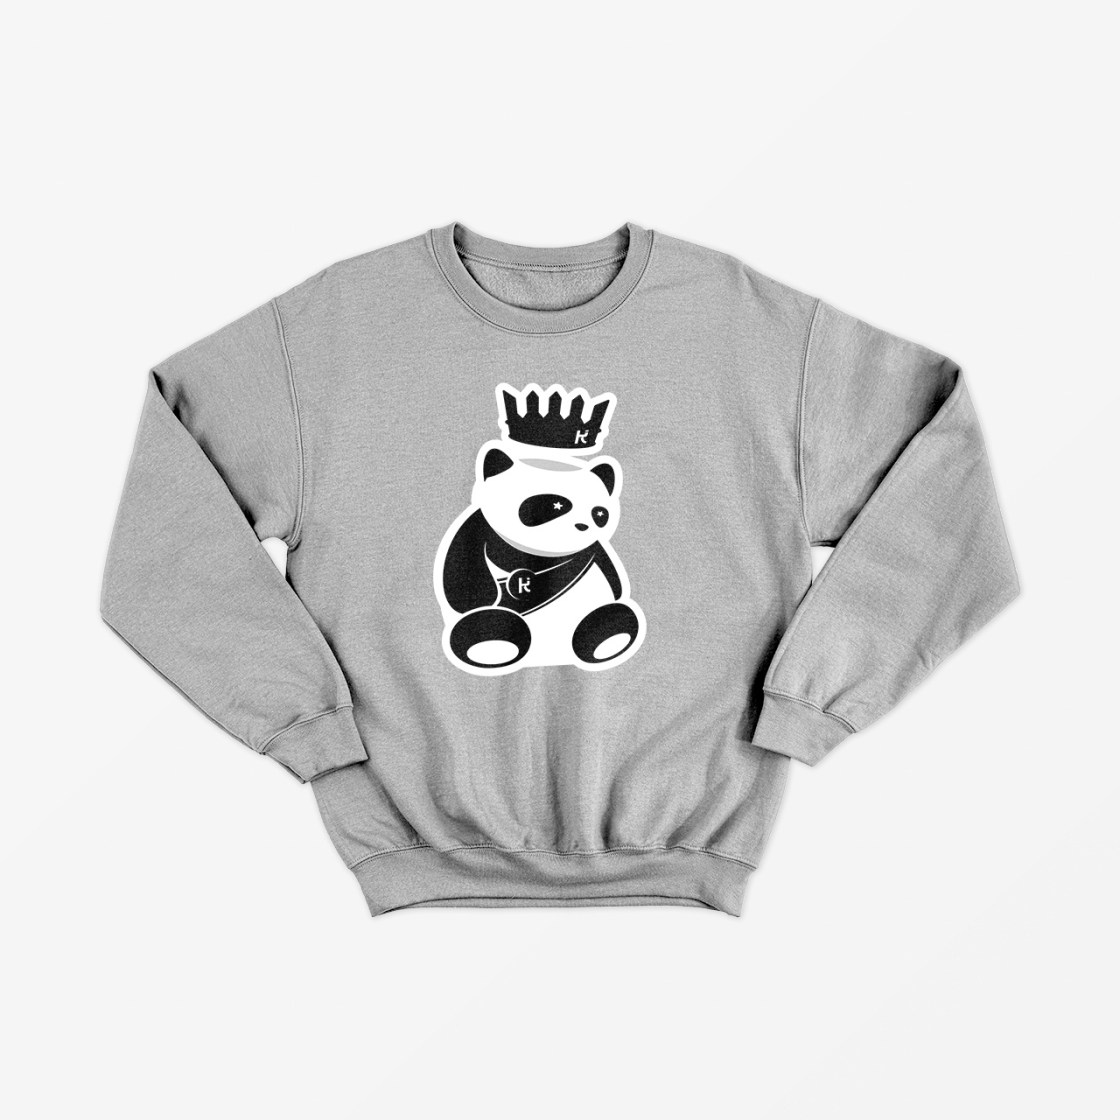 Classic Royal Pand Sweatshirt copy